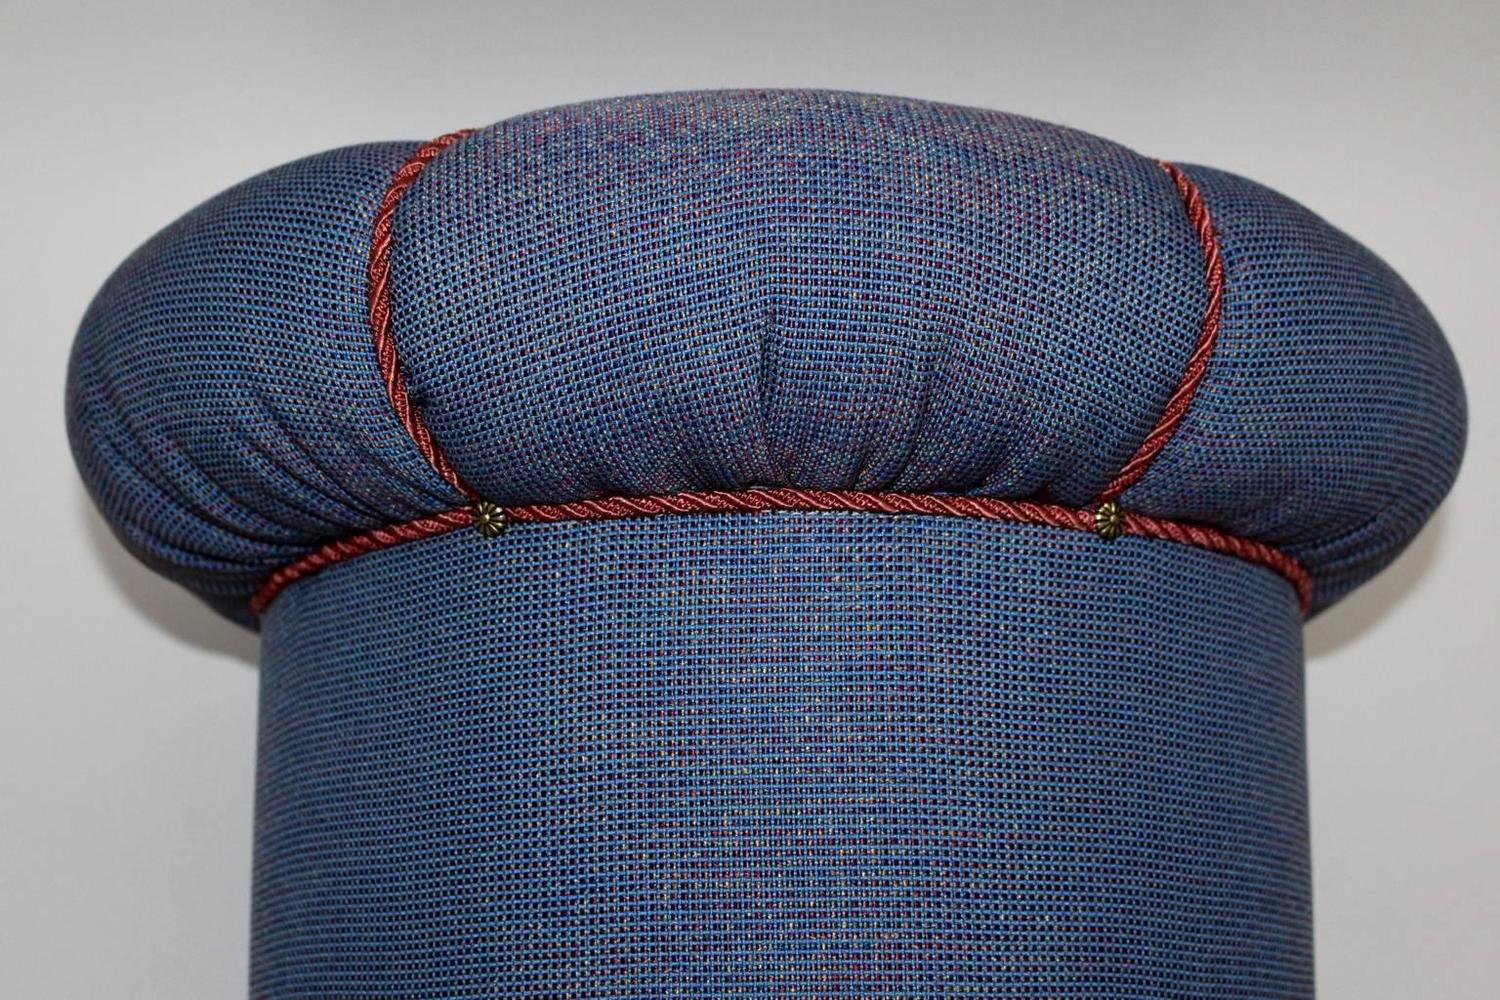 Art Deco Pouf Or Tabouret 1930s At 1stdibs